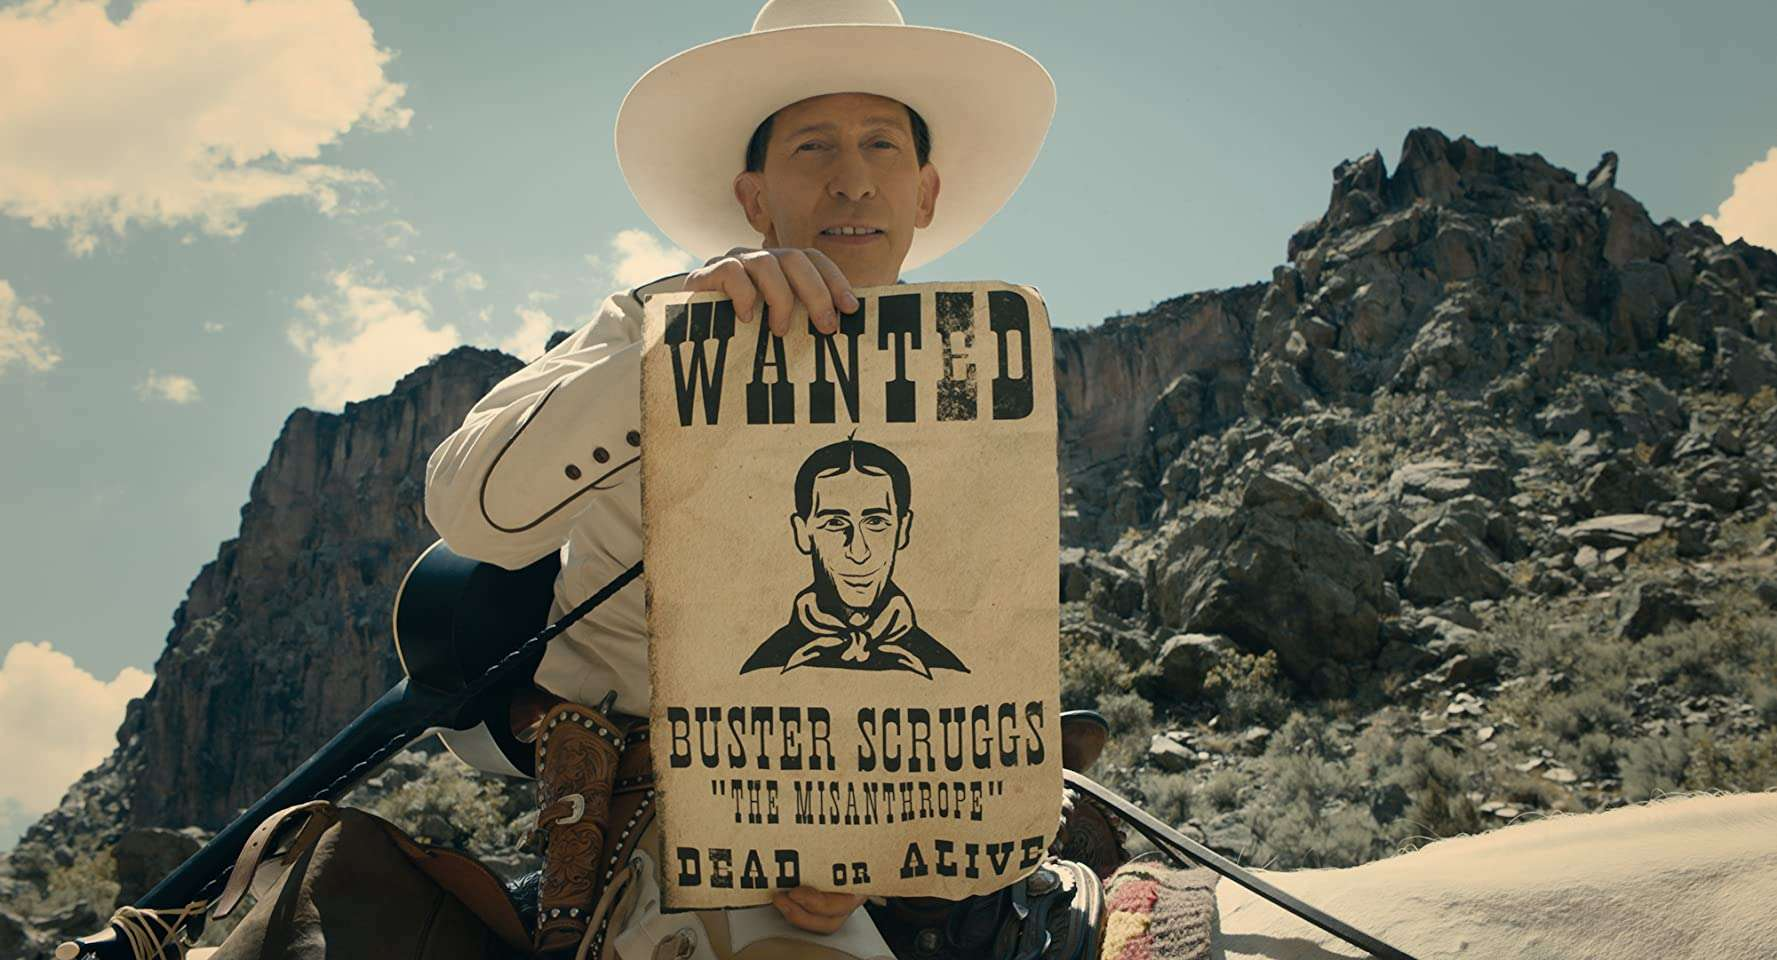 The-Ballad-Of-Buster-Scruggs-2018